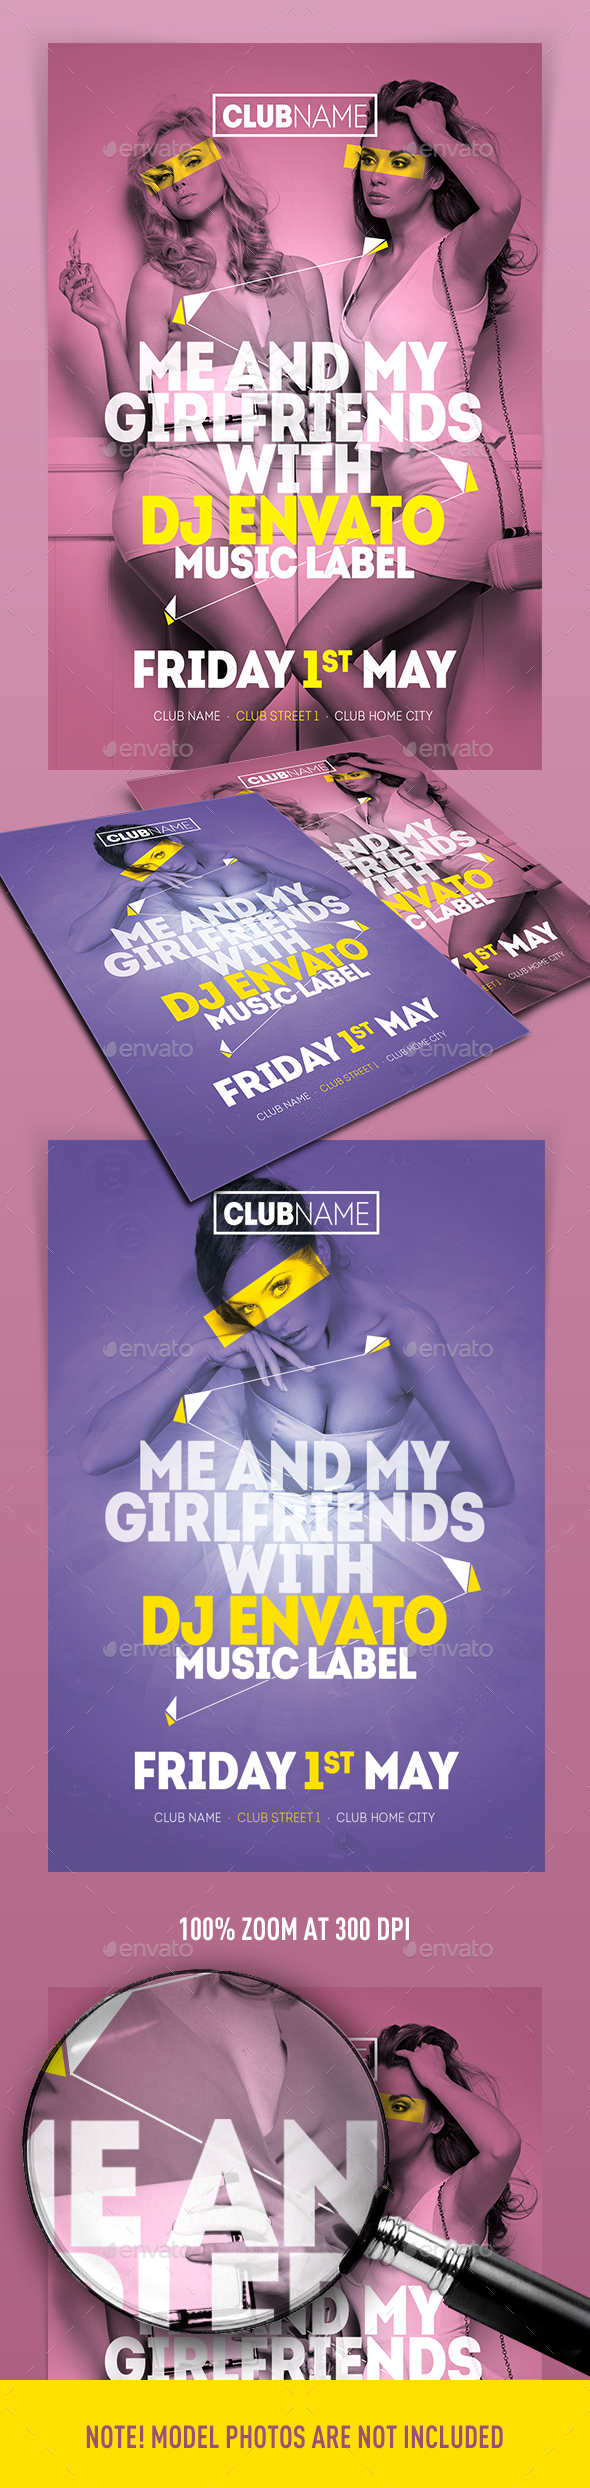 Me And My Girlfriends Flyer - Clubs & Parties Events